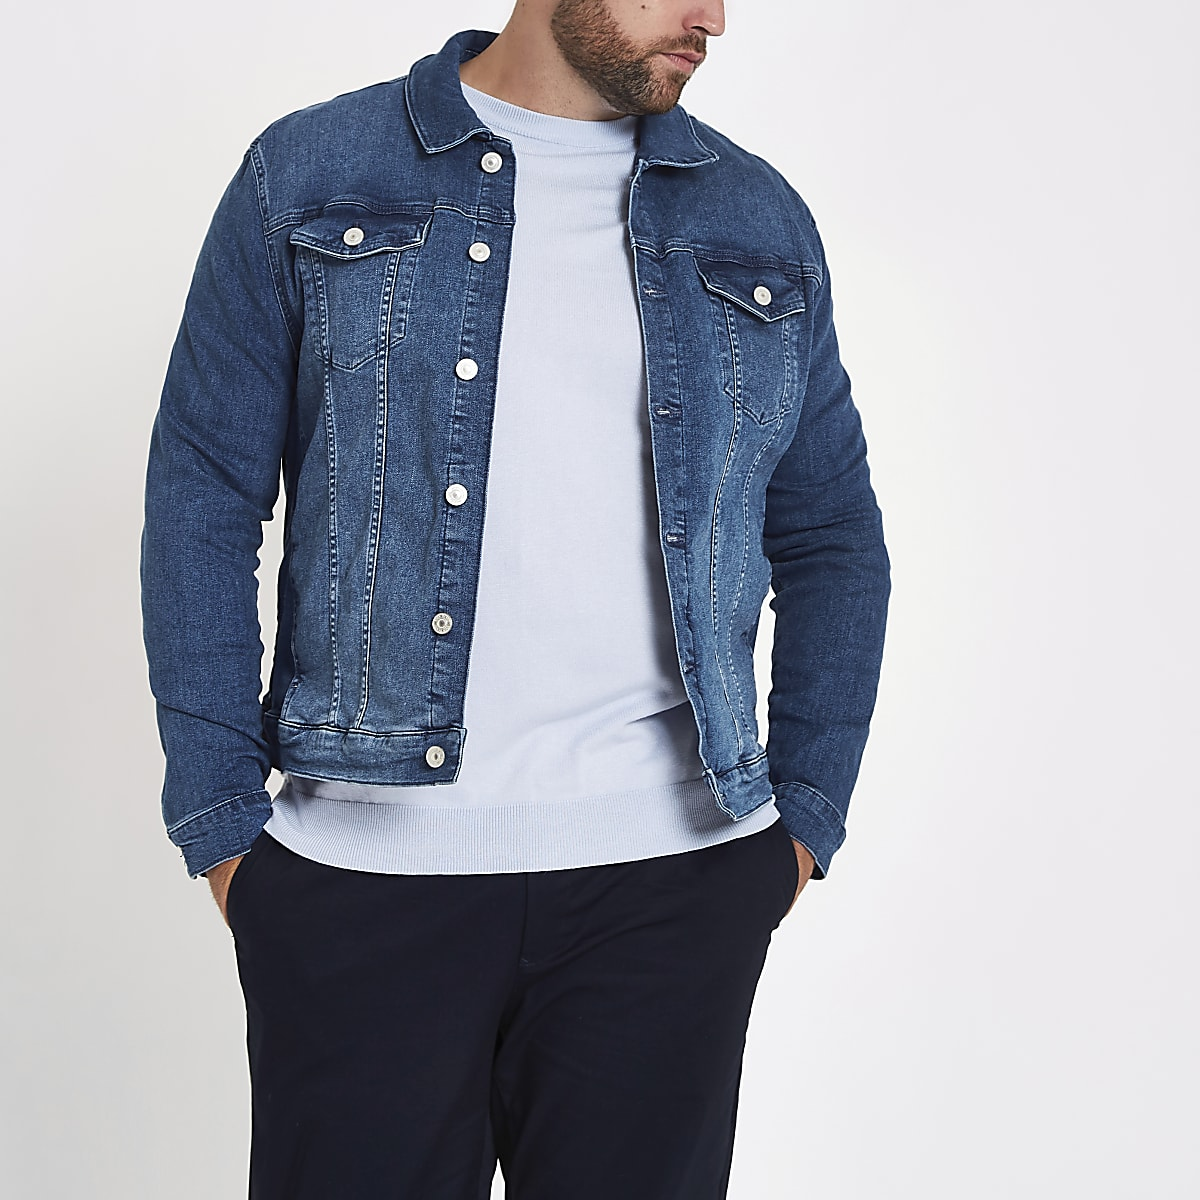 Big and Tall blue denim jacket